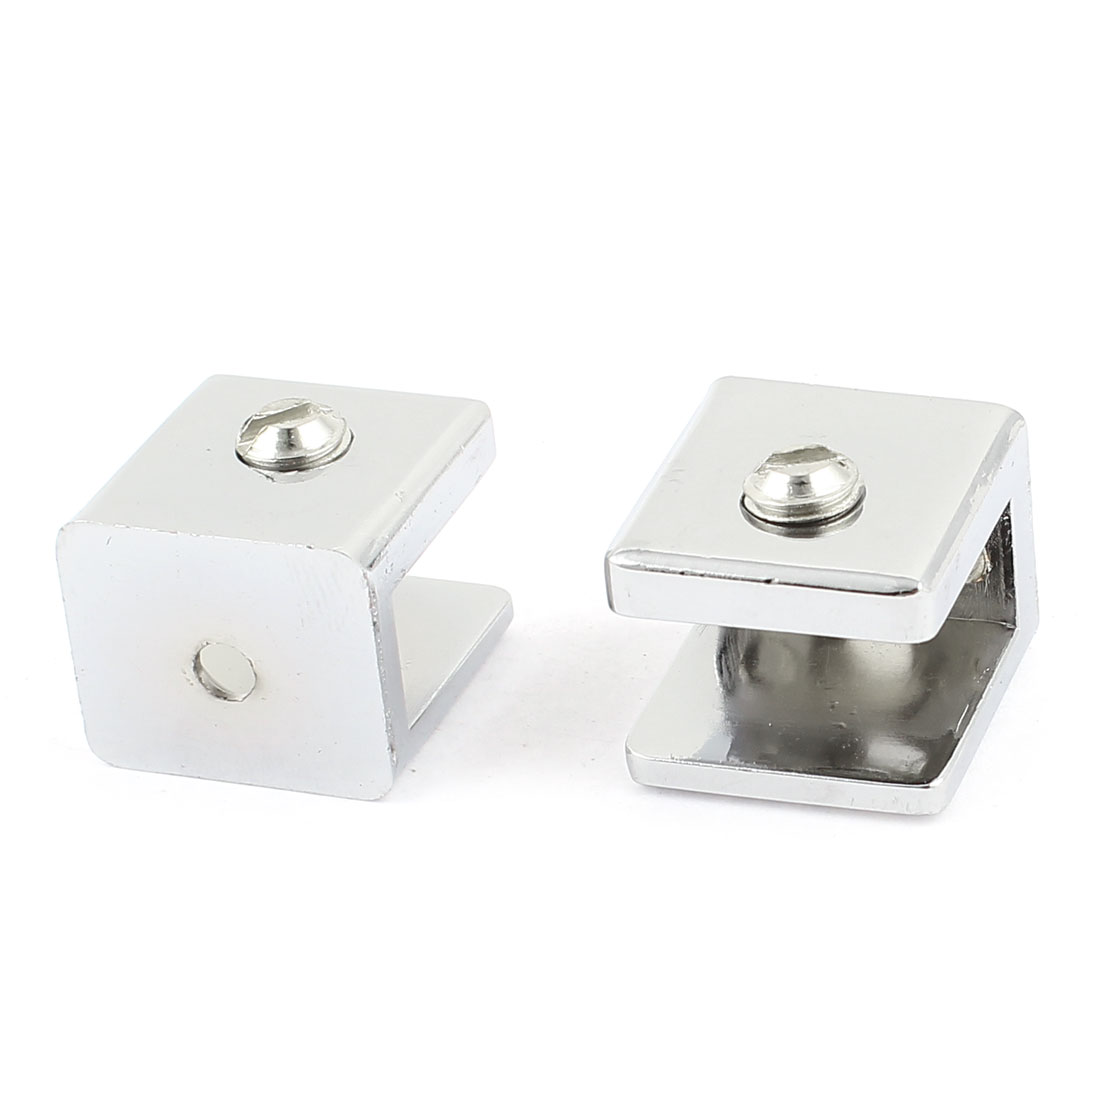 8mm-10mm Thickness Adjustable Square Shape Glass Clip Clamp 2 Pcs